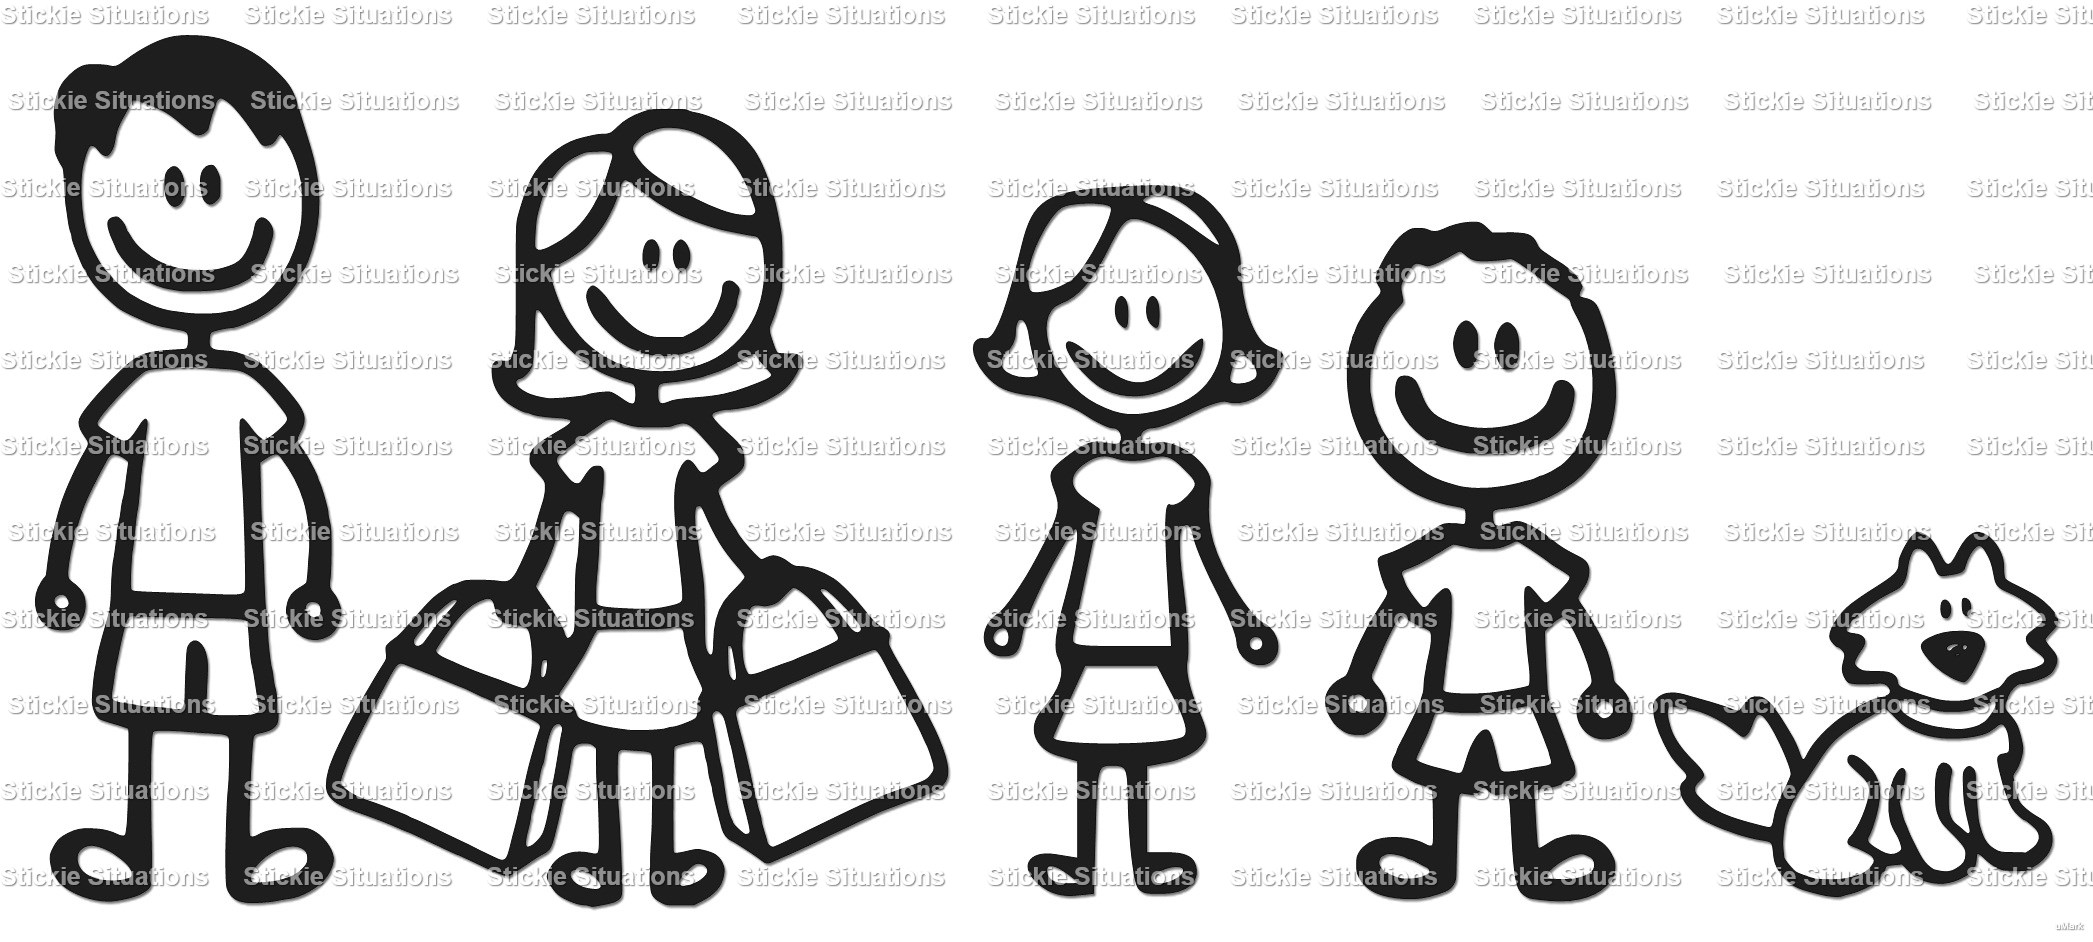 stick family car decal stickie situations online store powered rh stickiesituations storenvy com